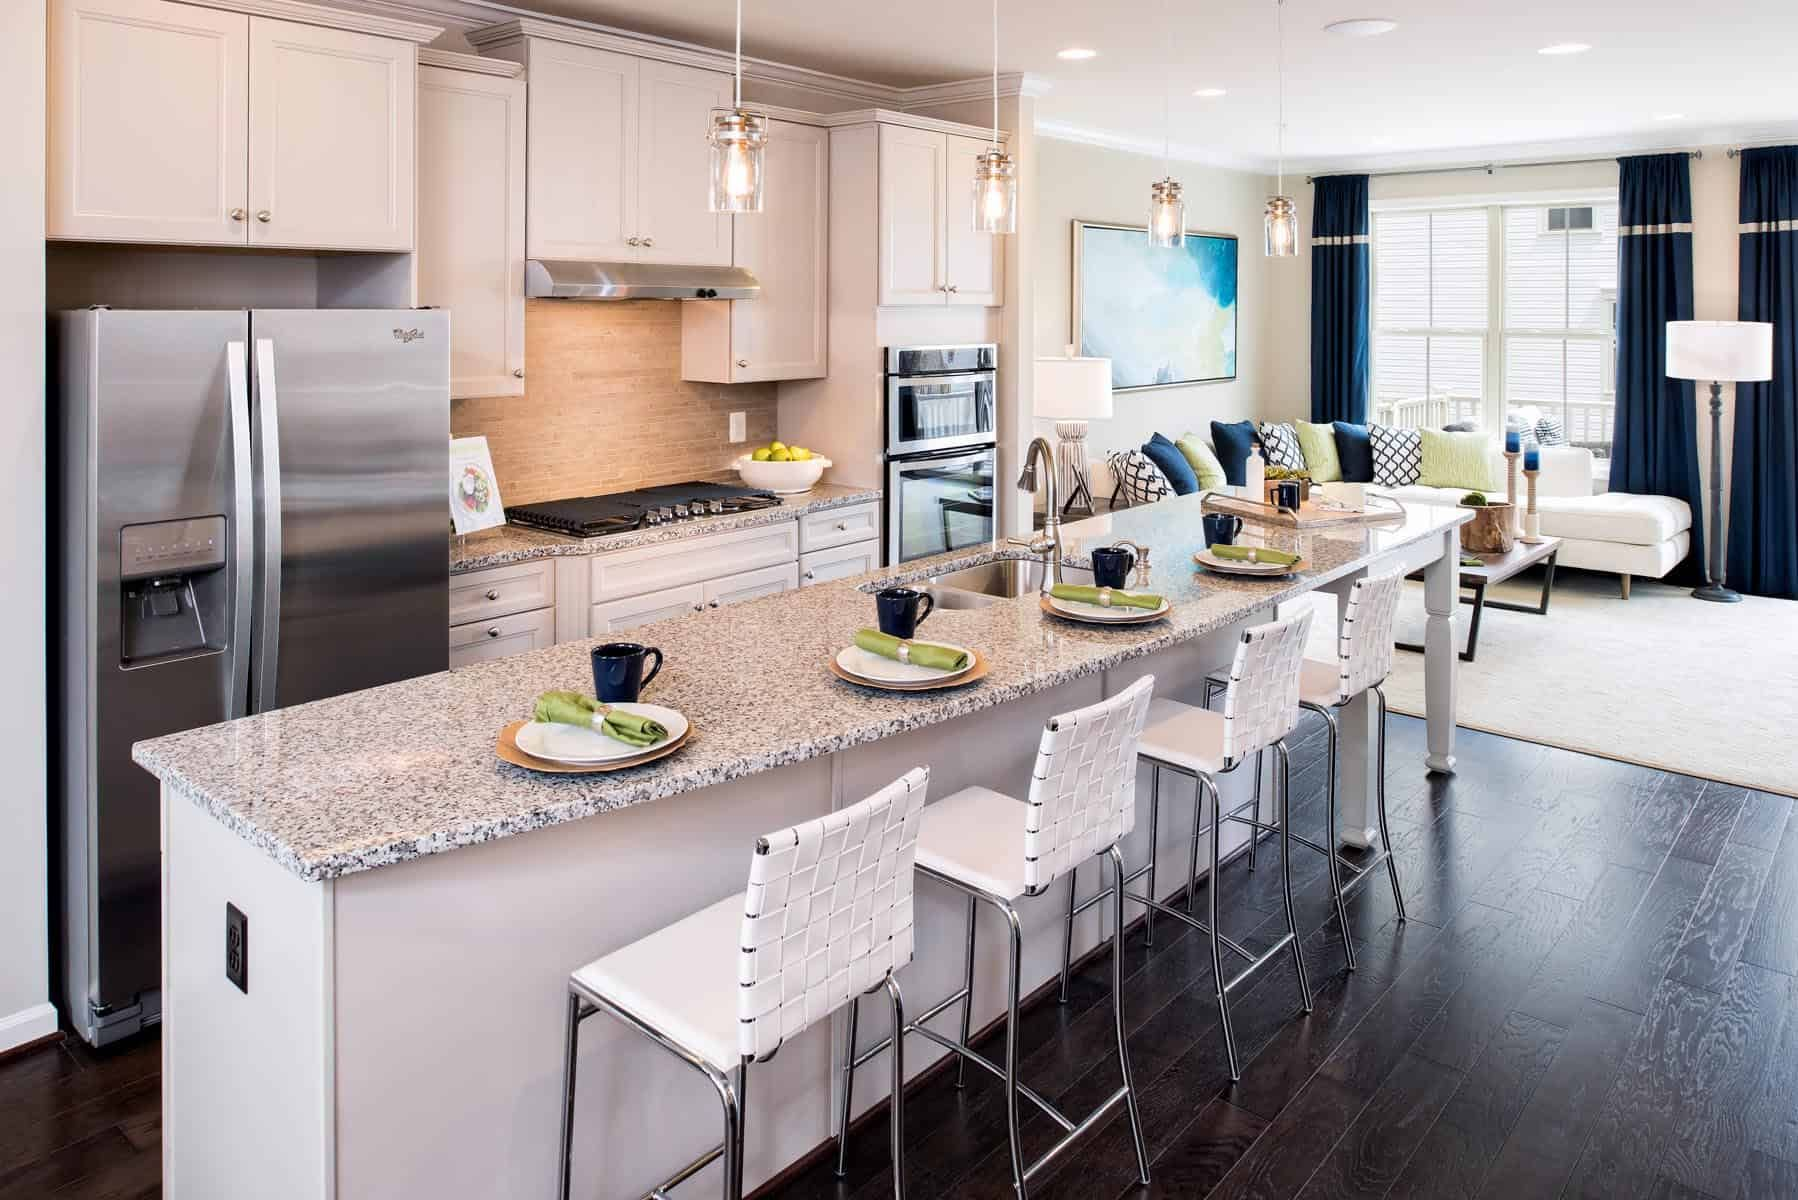 WH-residence-Winchester-Homes-uncategorized-2934:The Hadden - Kitchen